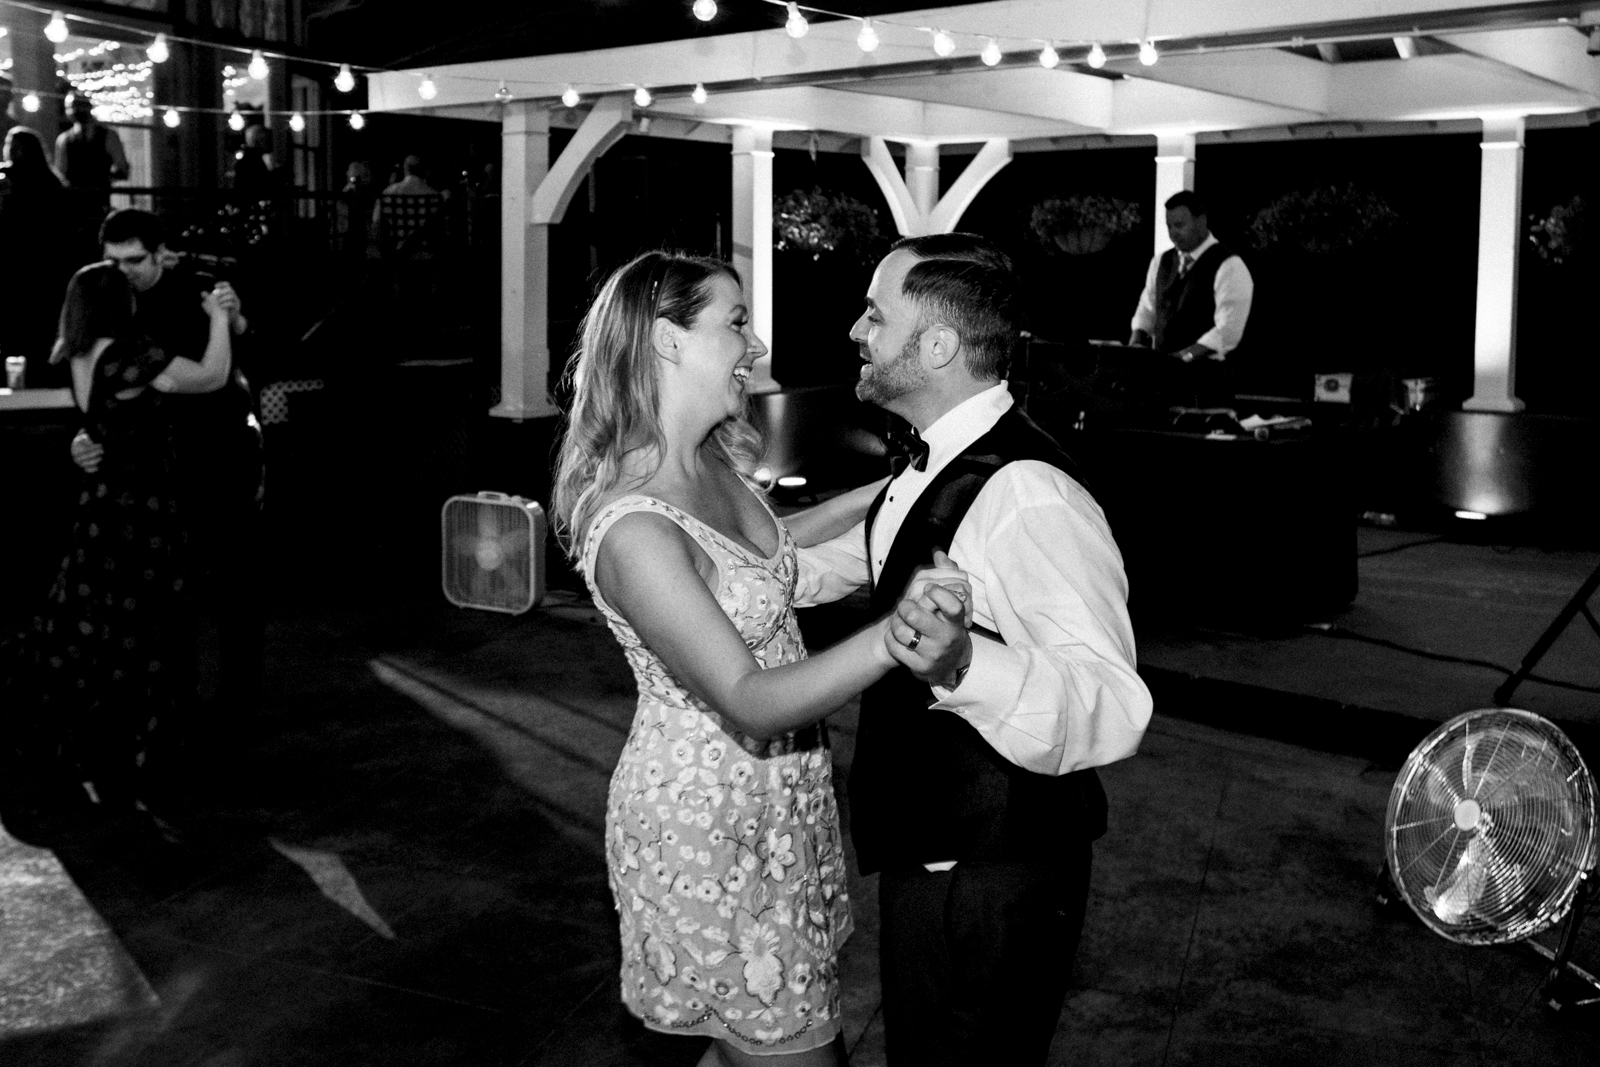 Black and white photo of bride and groom dancing at wedding reception.